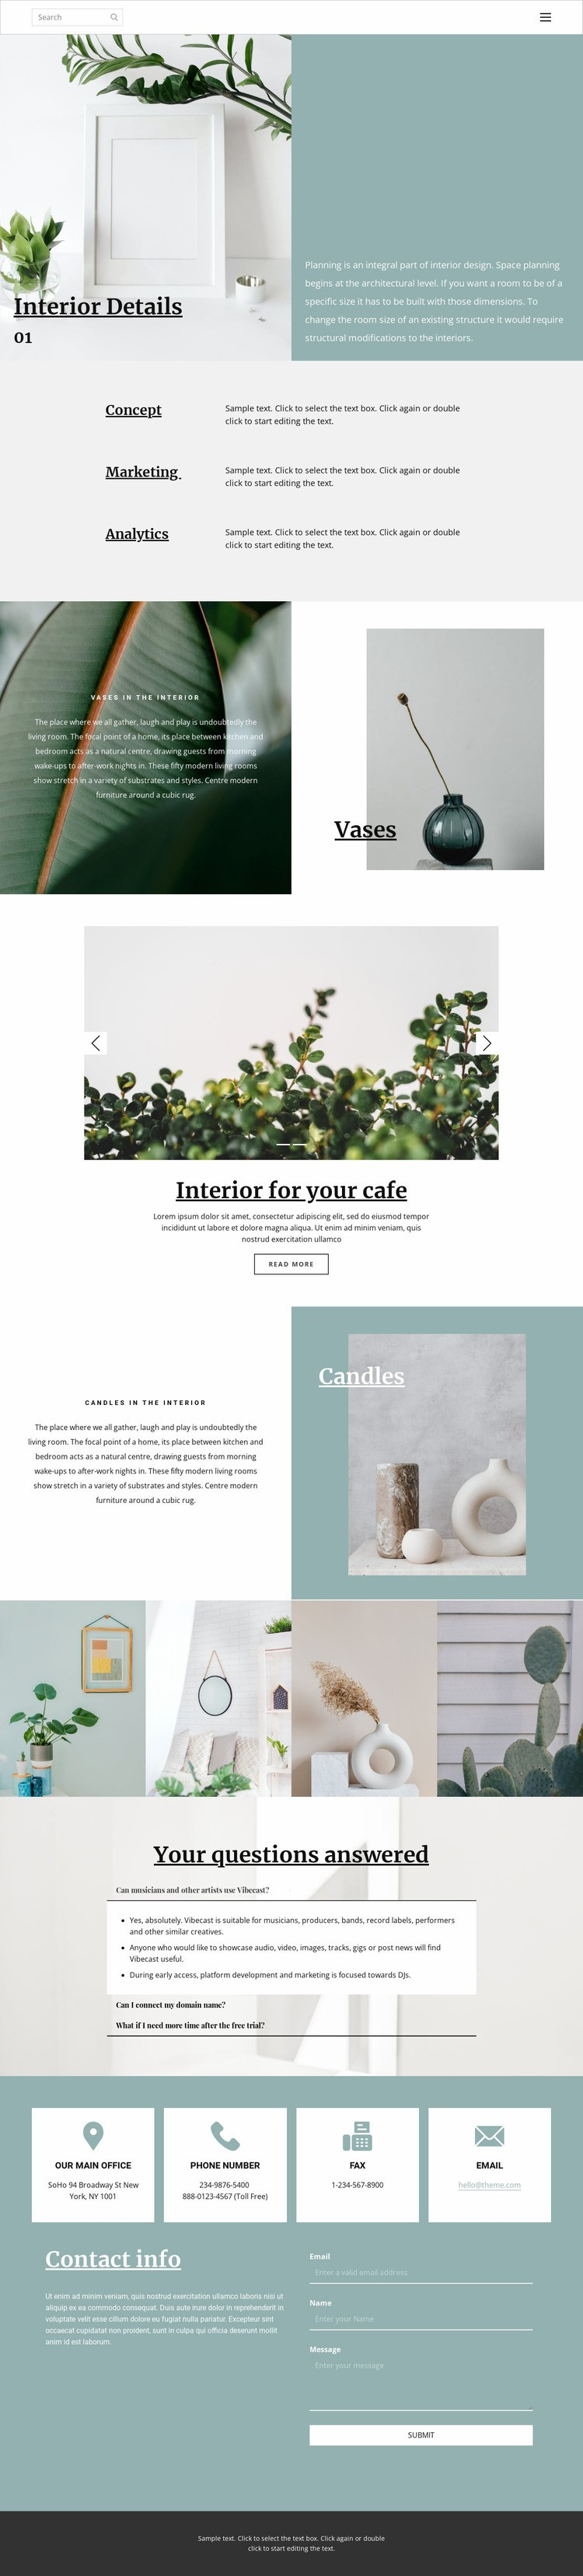 Help in organizing the space at home Web Page Designer